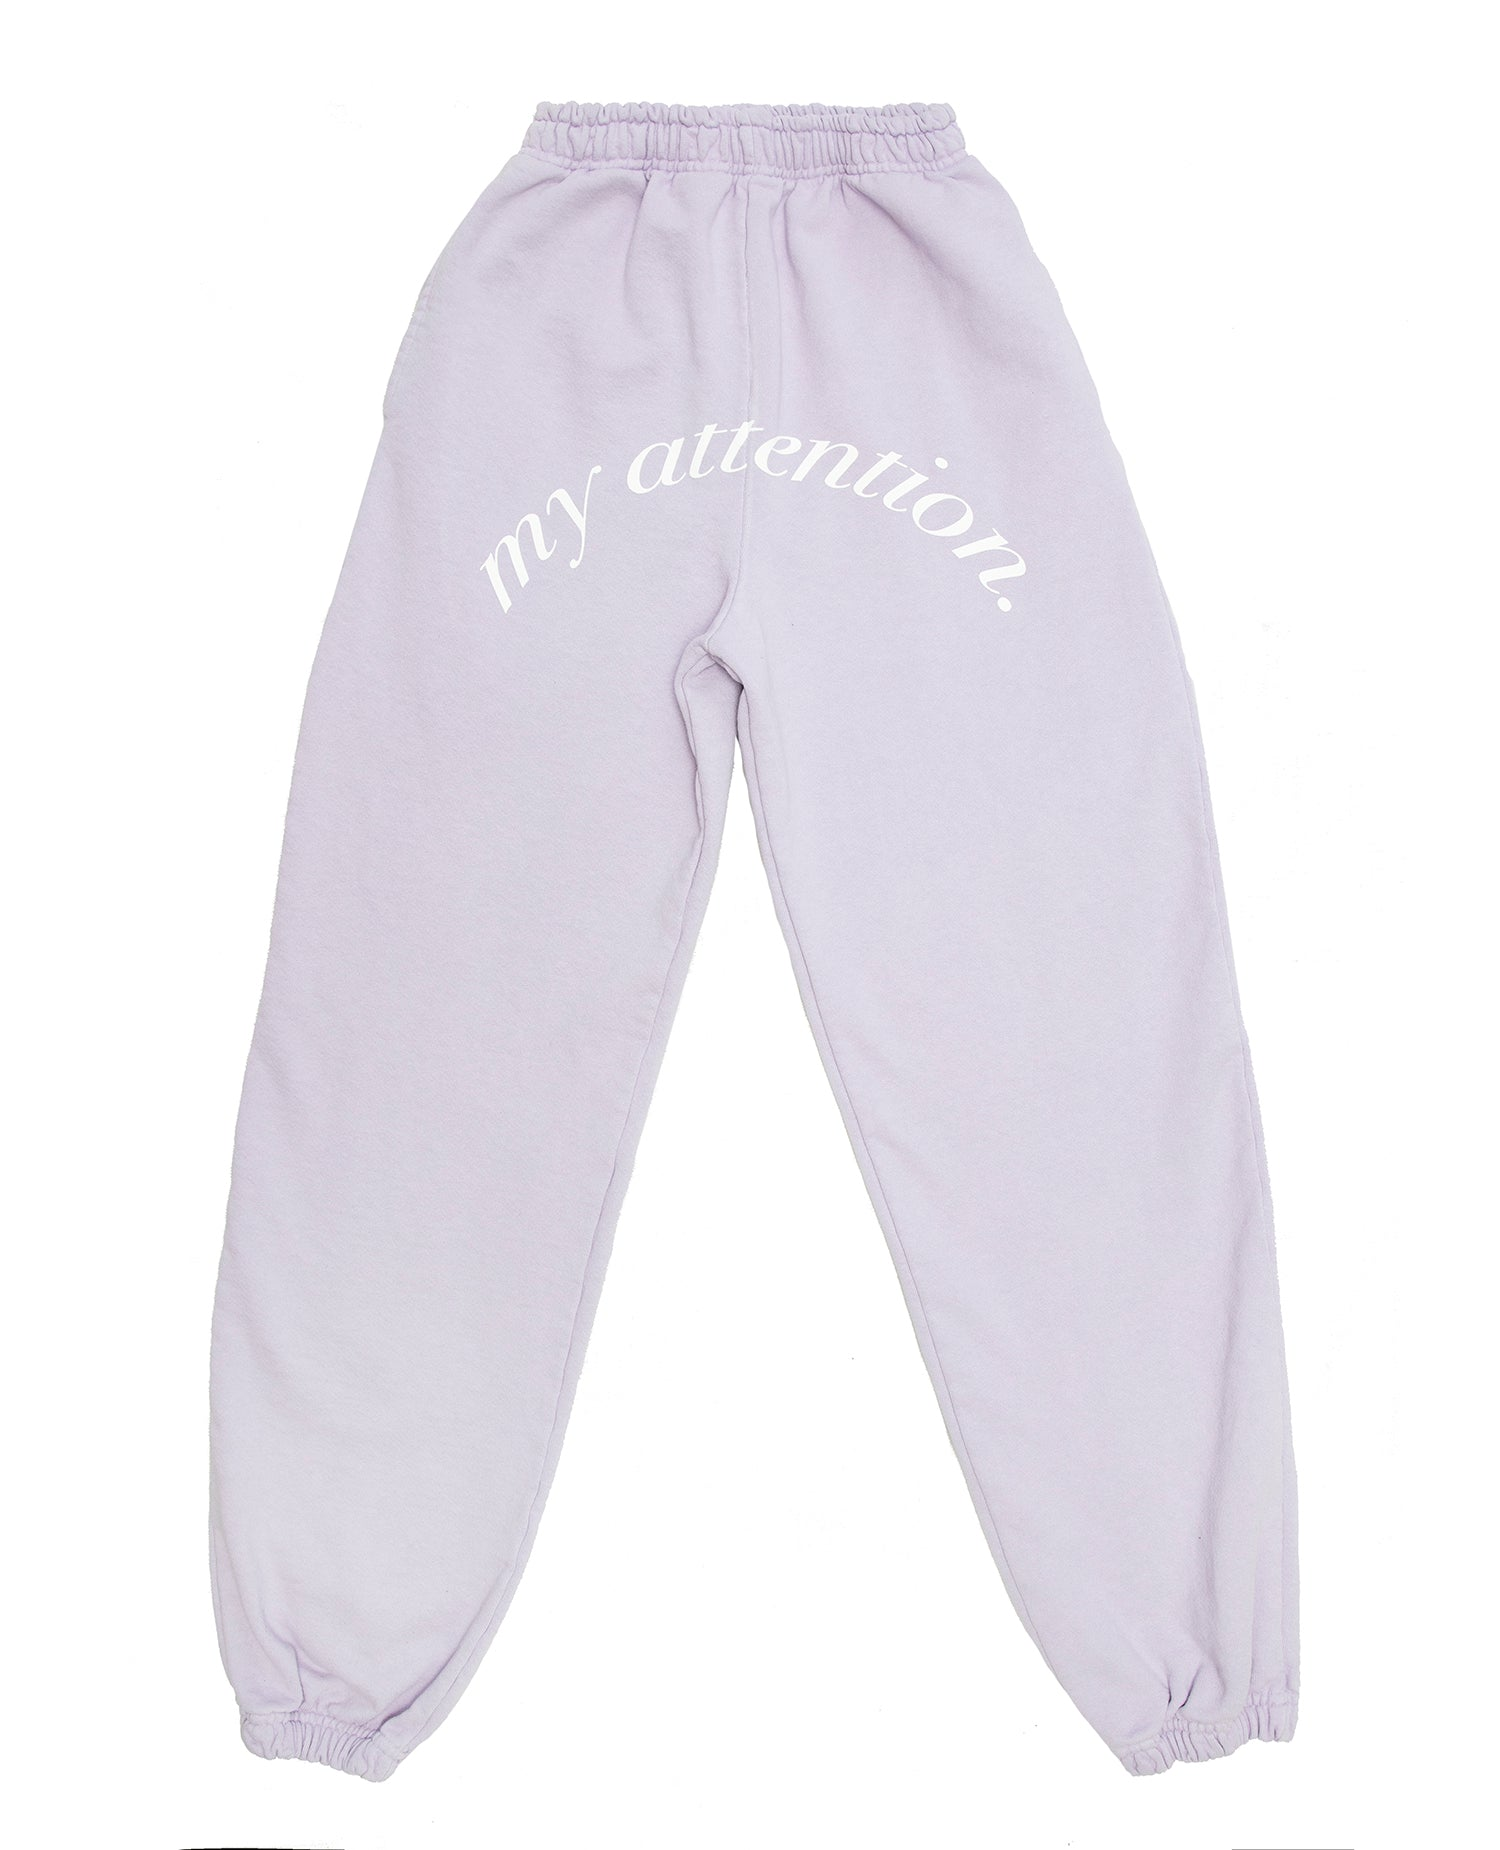 My Attention Sweatpants